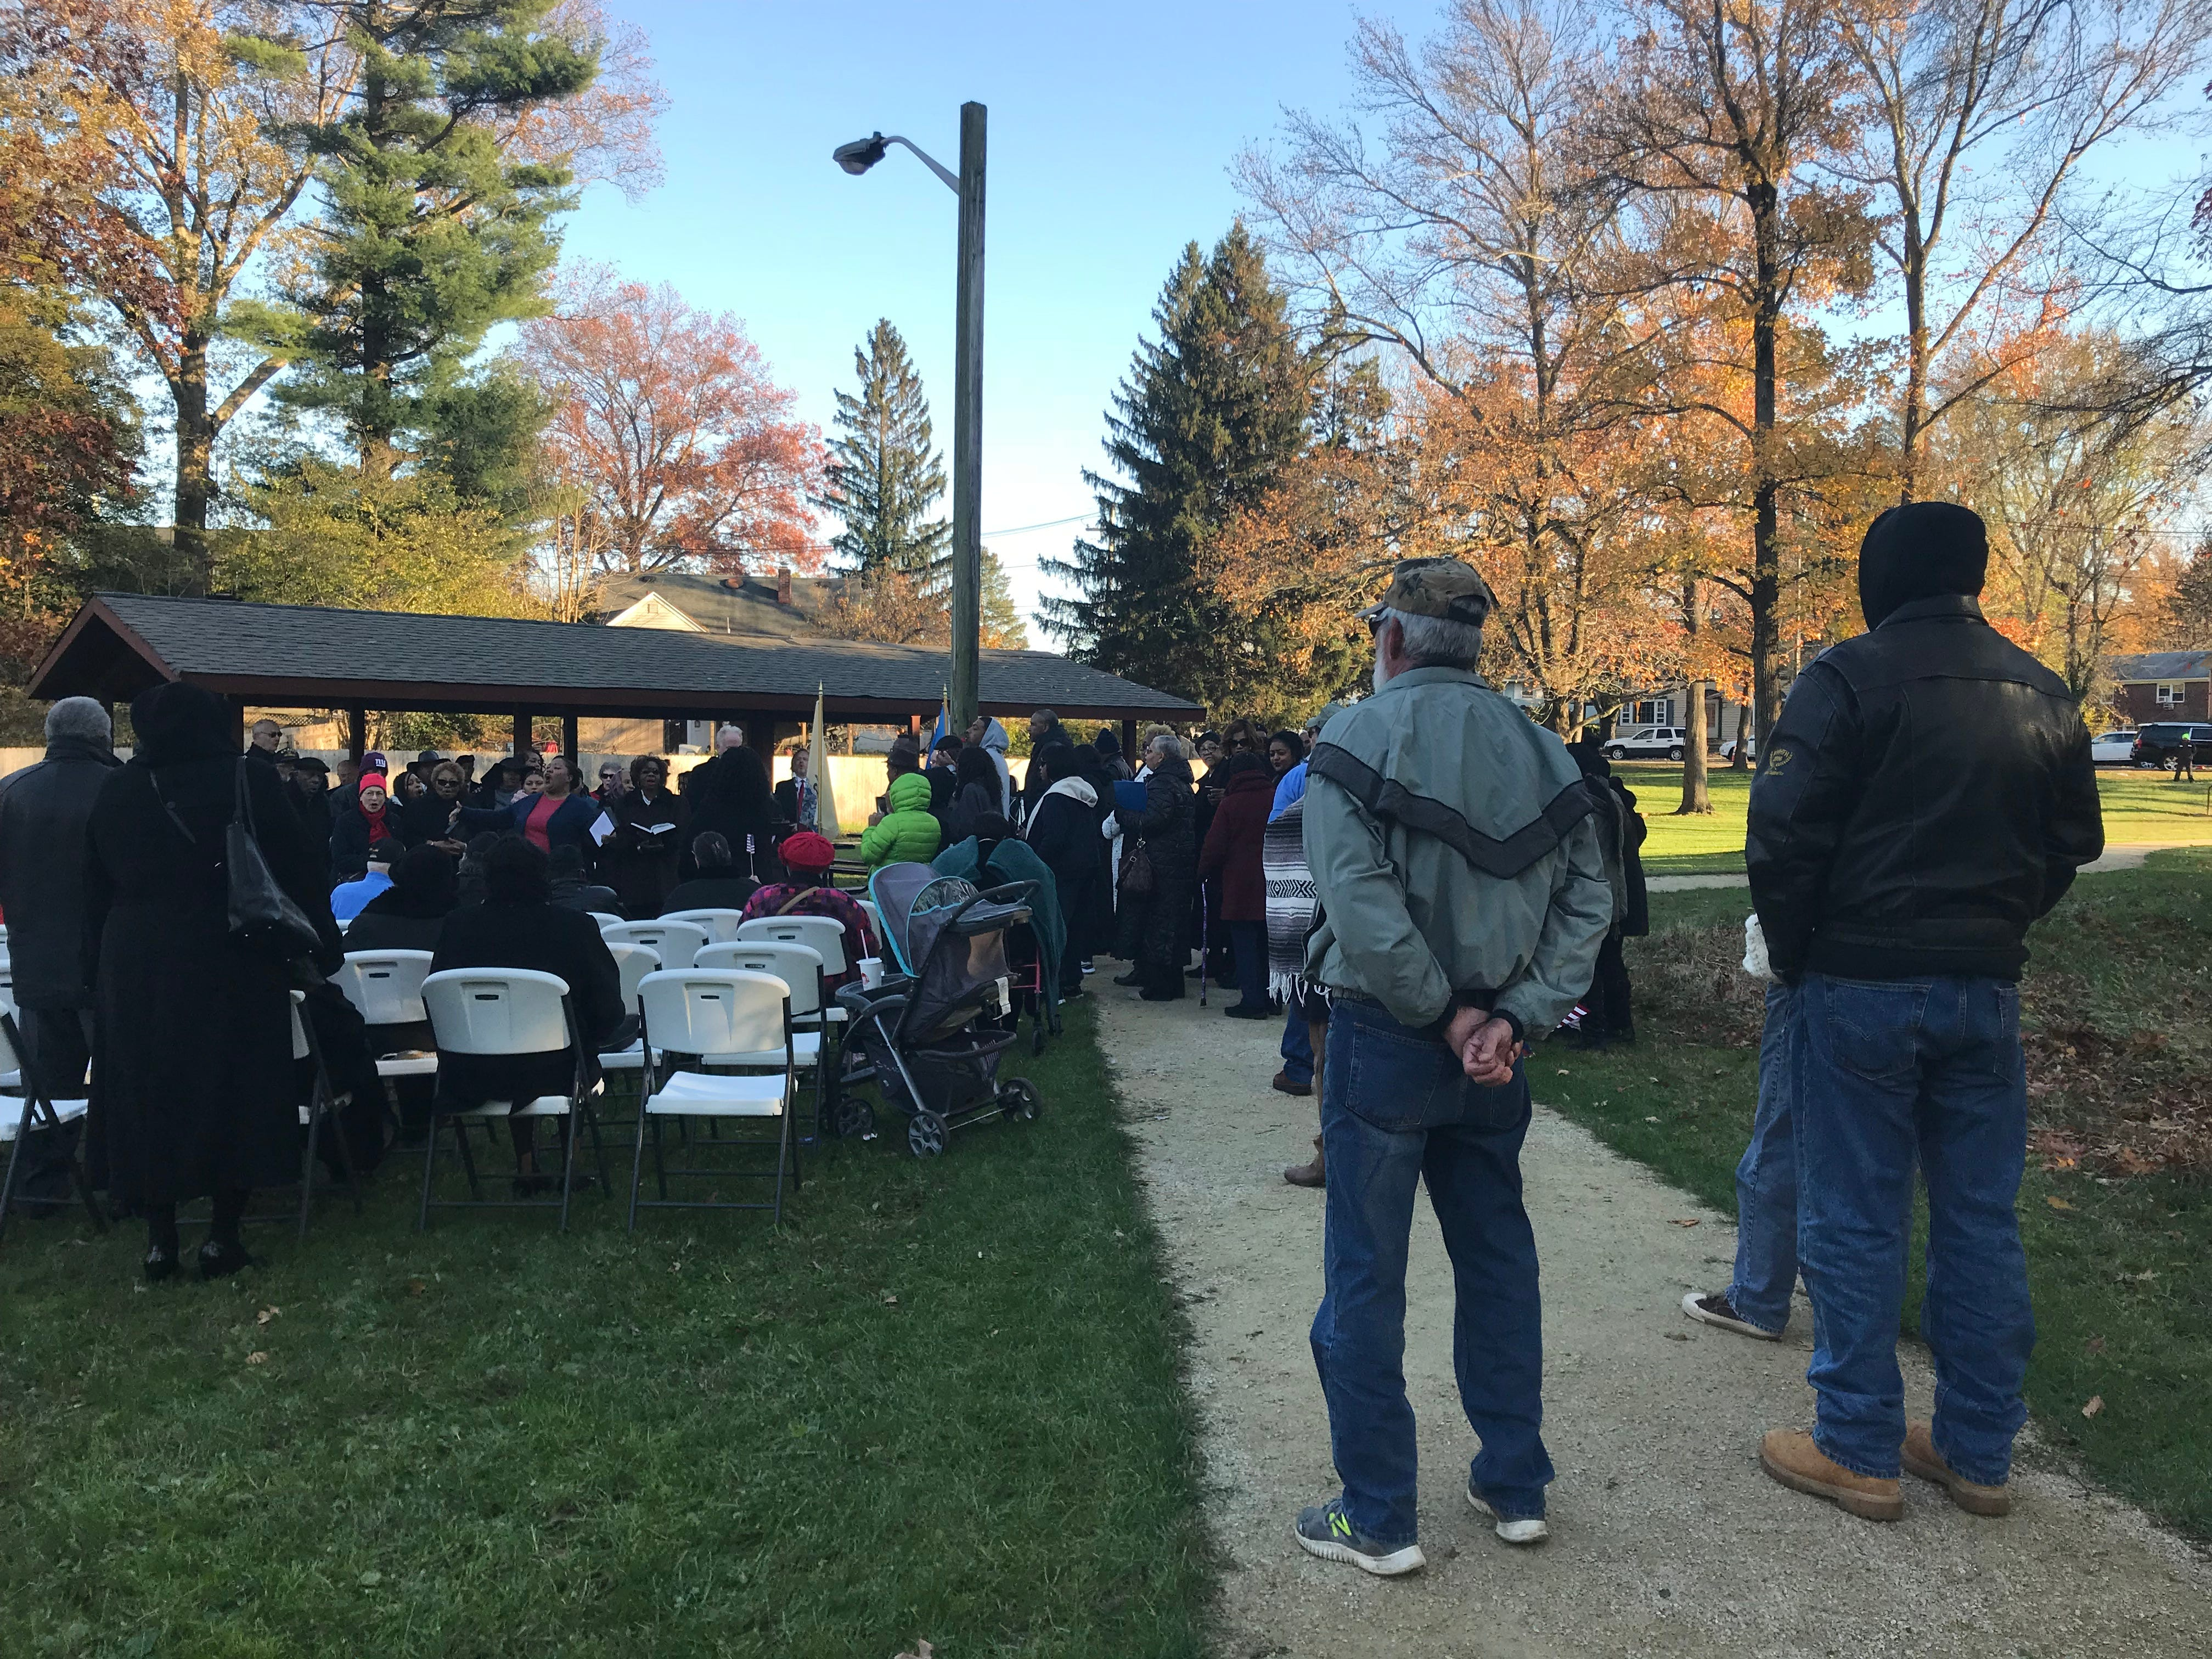 More than 100 people attended the re-dedication ceremony Sunday afternoon at Veterans Park in Freehold. The ceremony commemorated the six Lewis brothers from Freehold Borough who fought in World War II.